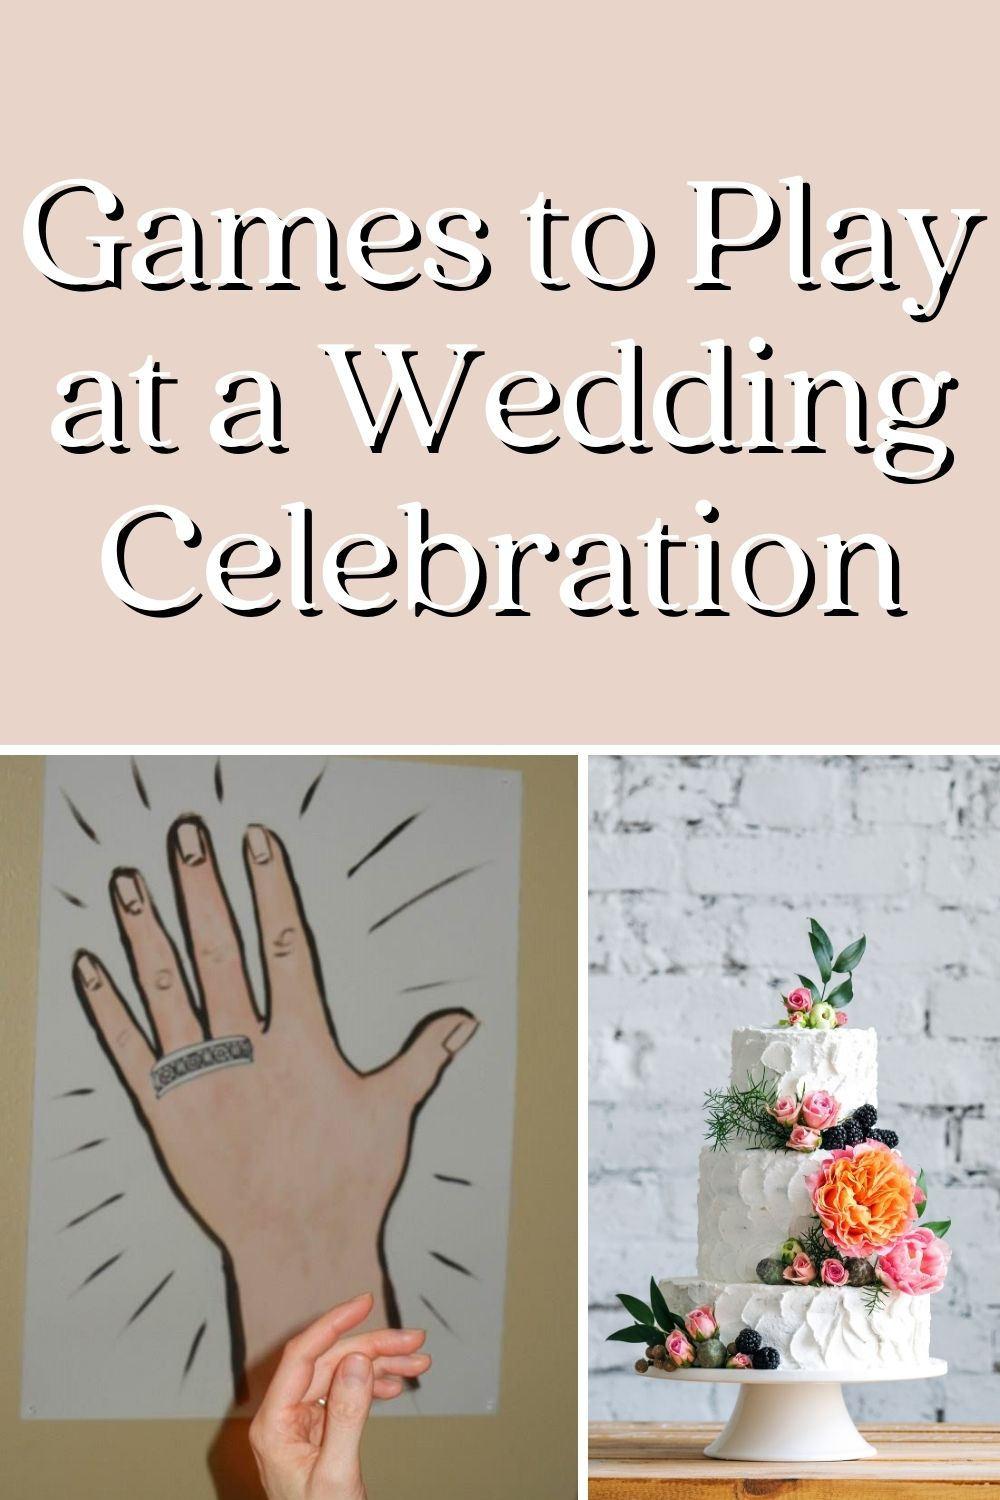 Games to Play at a Wedding Celebration